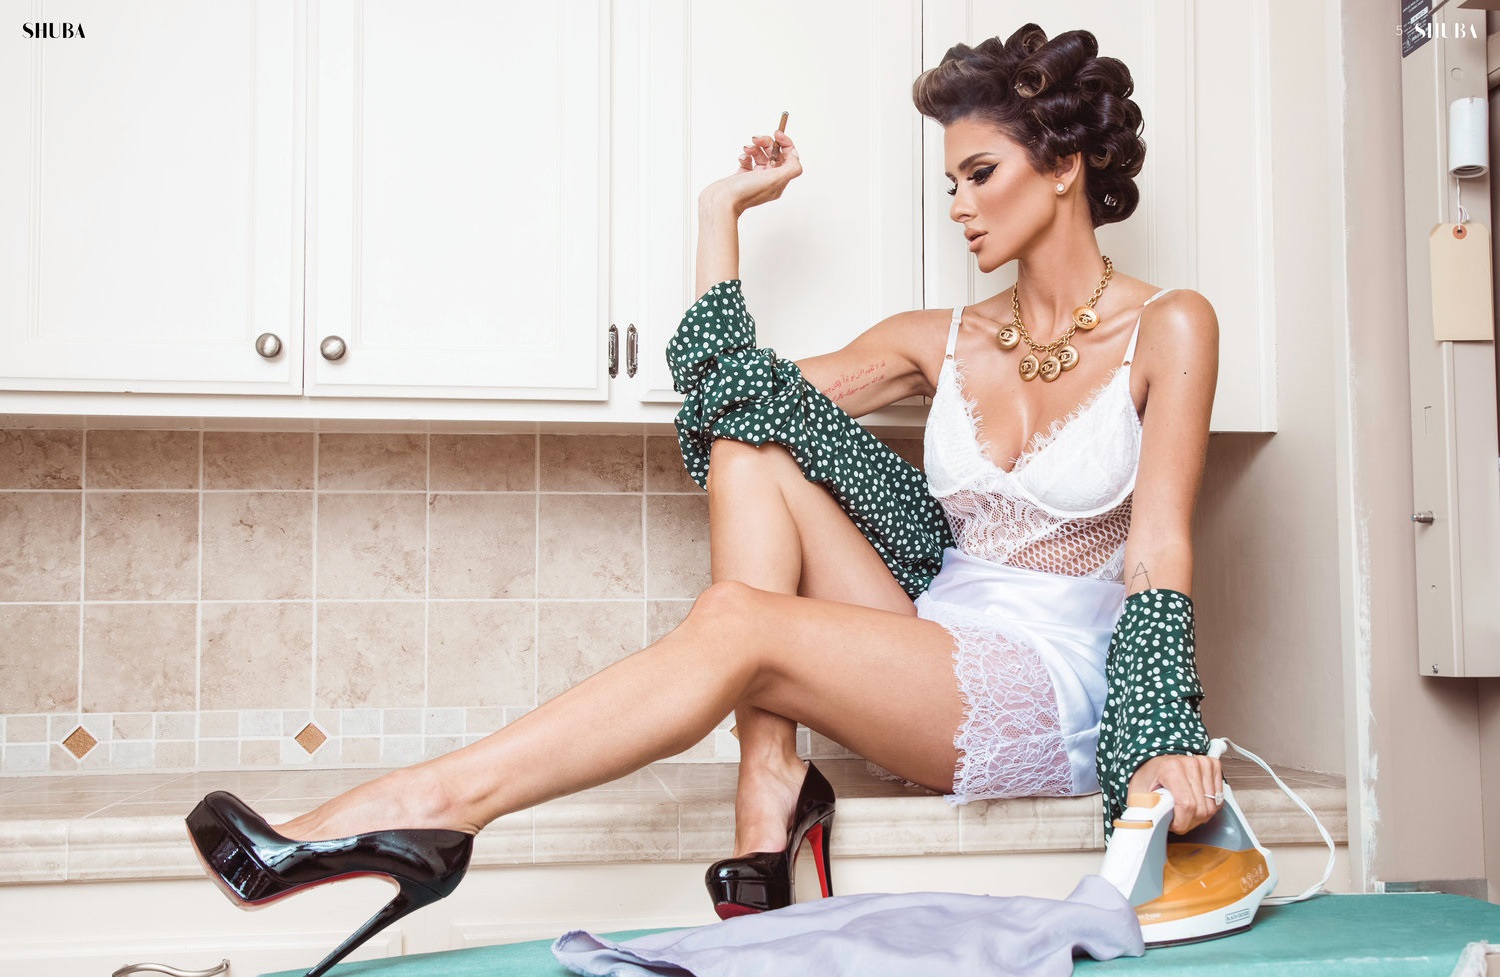 Brittany Furlan Lee for Shuba Magazine